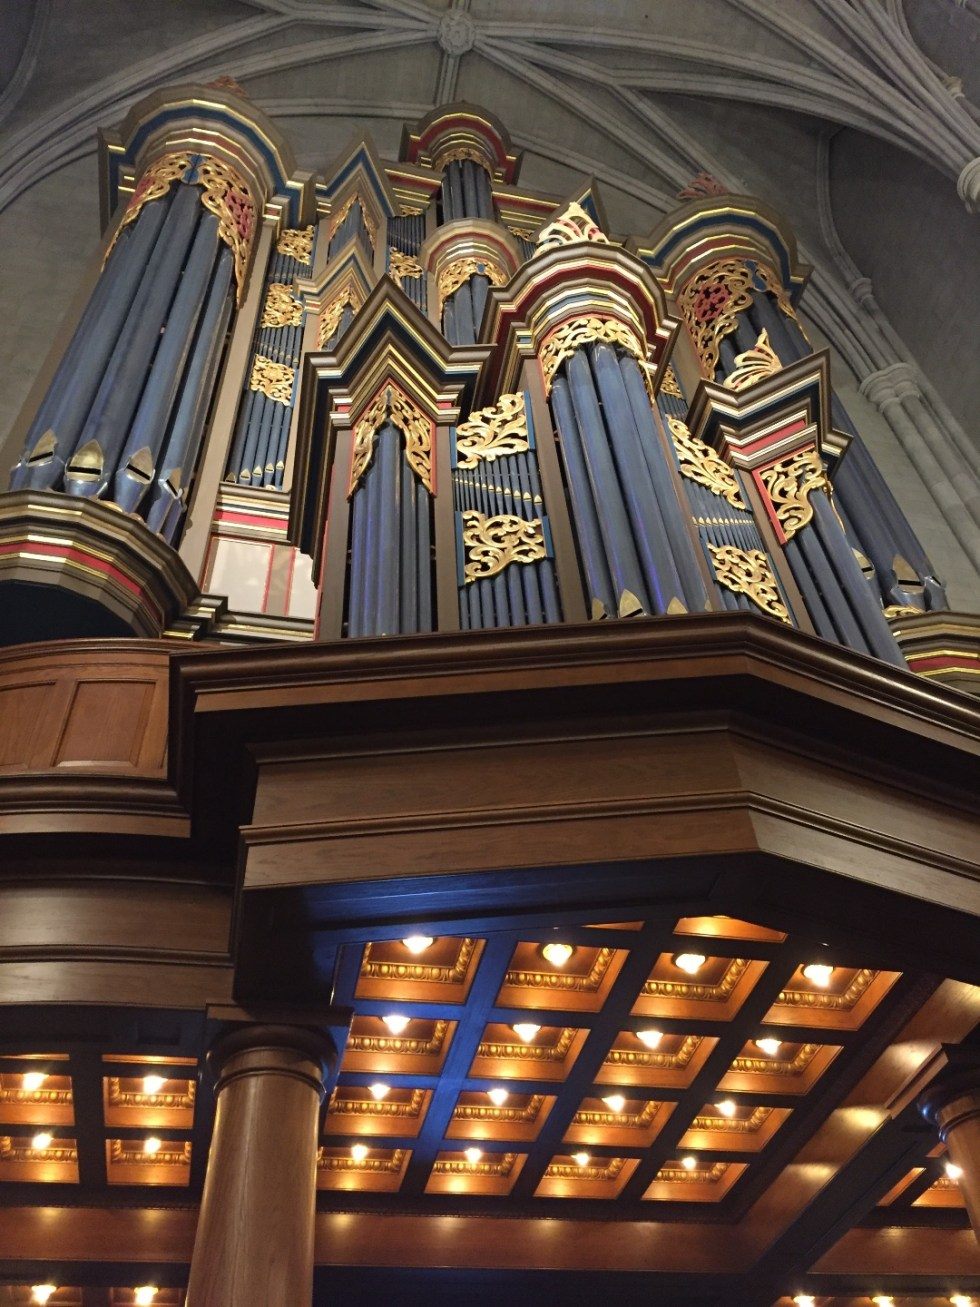 23 Awesome Things To Do in Durham - I'm Fixin' To - @imfixintoblog | Things to do in Durham by popular NC travel blog, I'm Fixin' To: image of the Duke Chapel pipe organ.